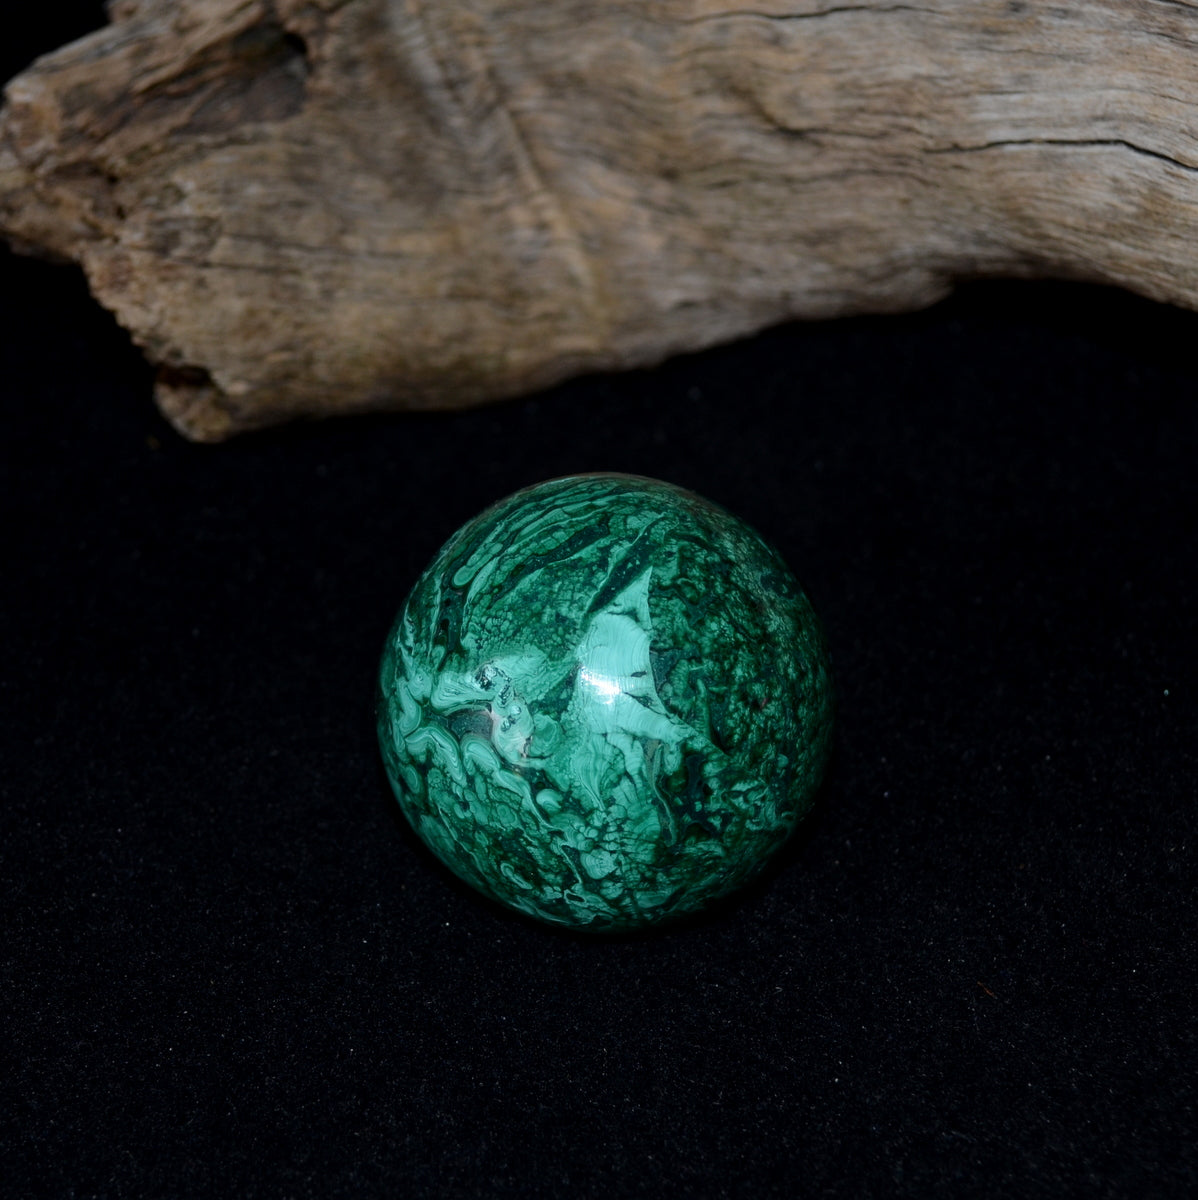 Stunning Malachite Sphere - Protective Healing Truth - Shop Now at Illiom Crystals - We Have Afterpay